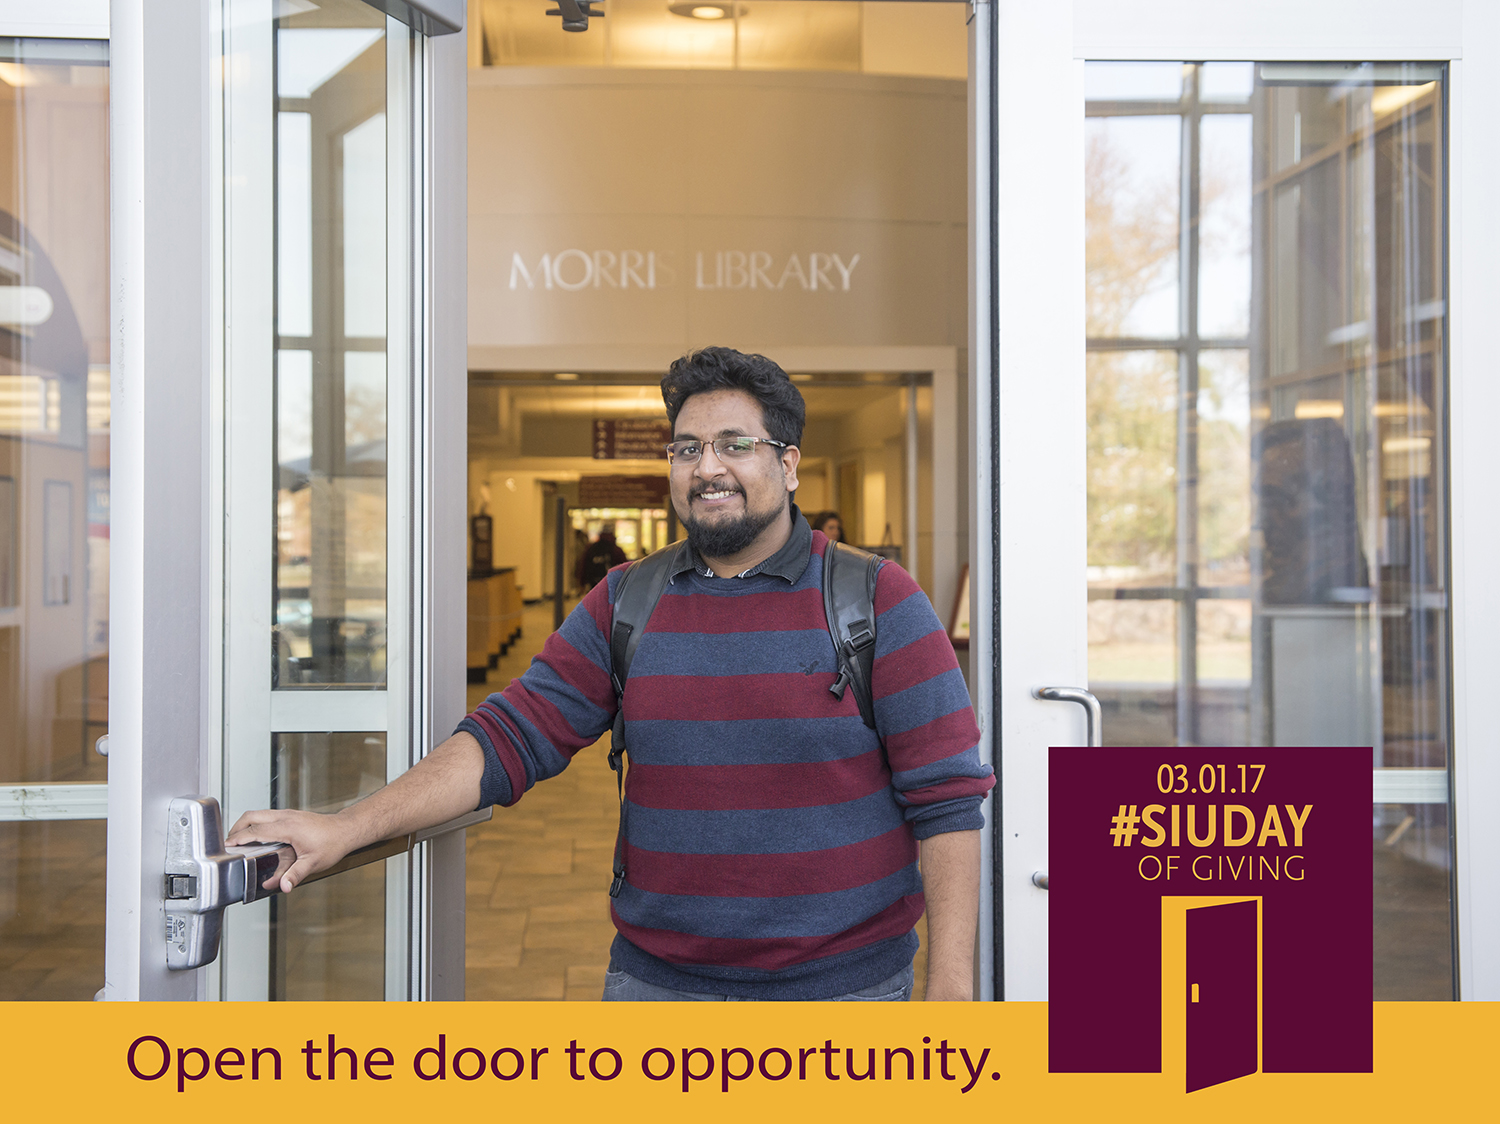 SIU Day of Giving – Open the door to opportunity at SIU Morris Library